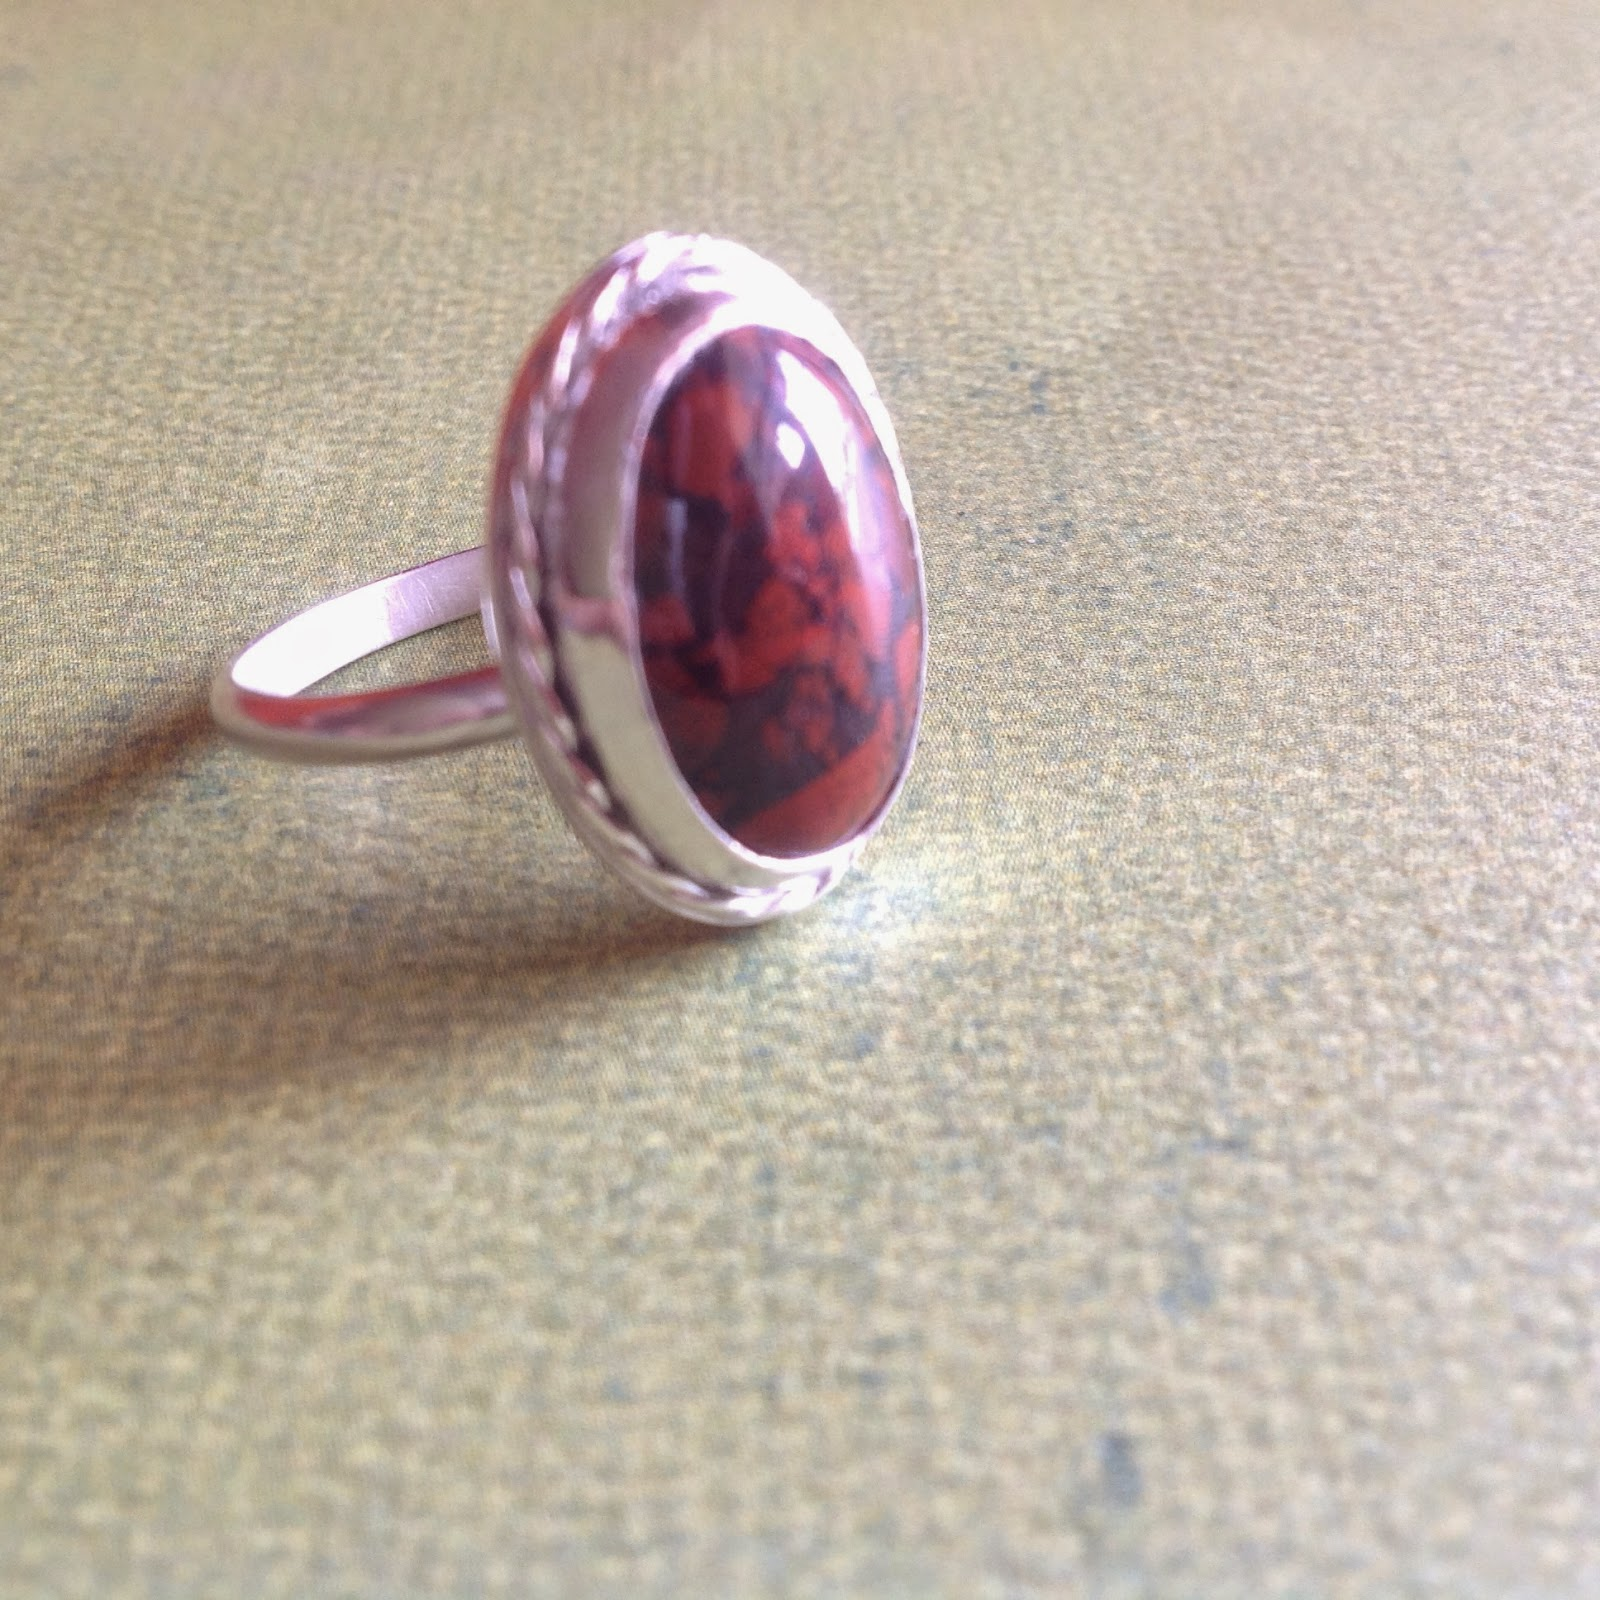 Red cabochon ring with twisted silver wire around it